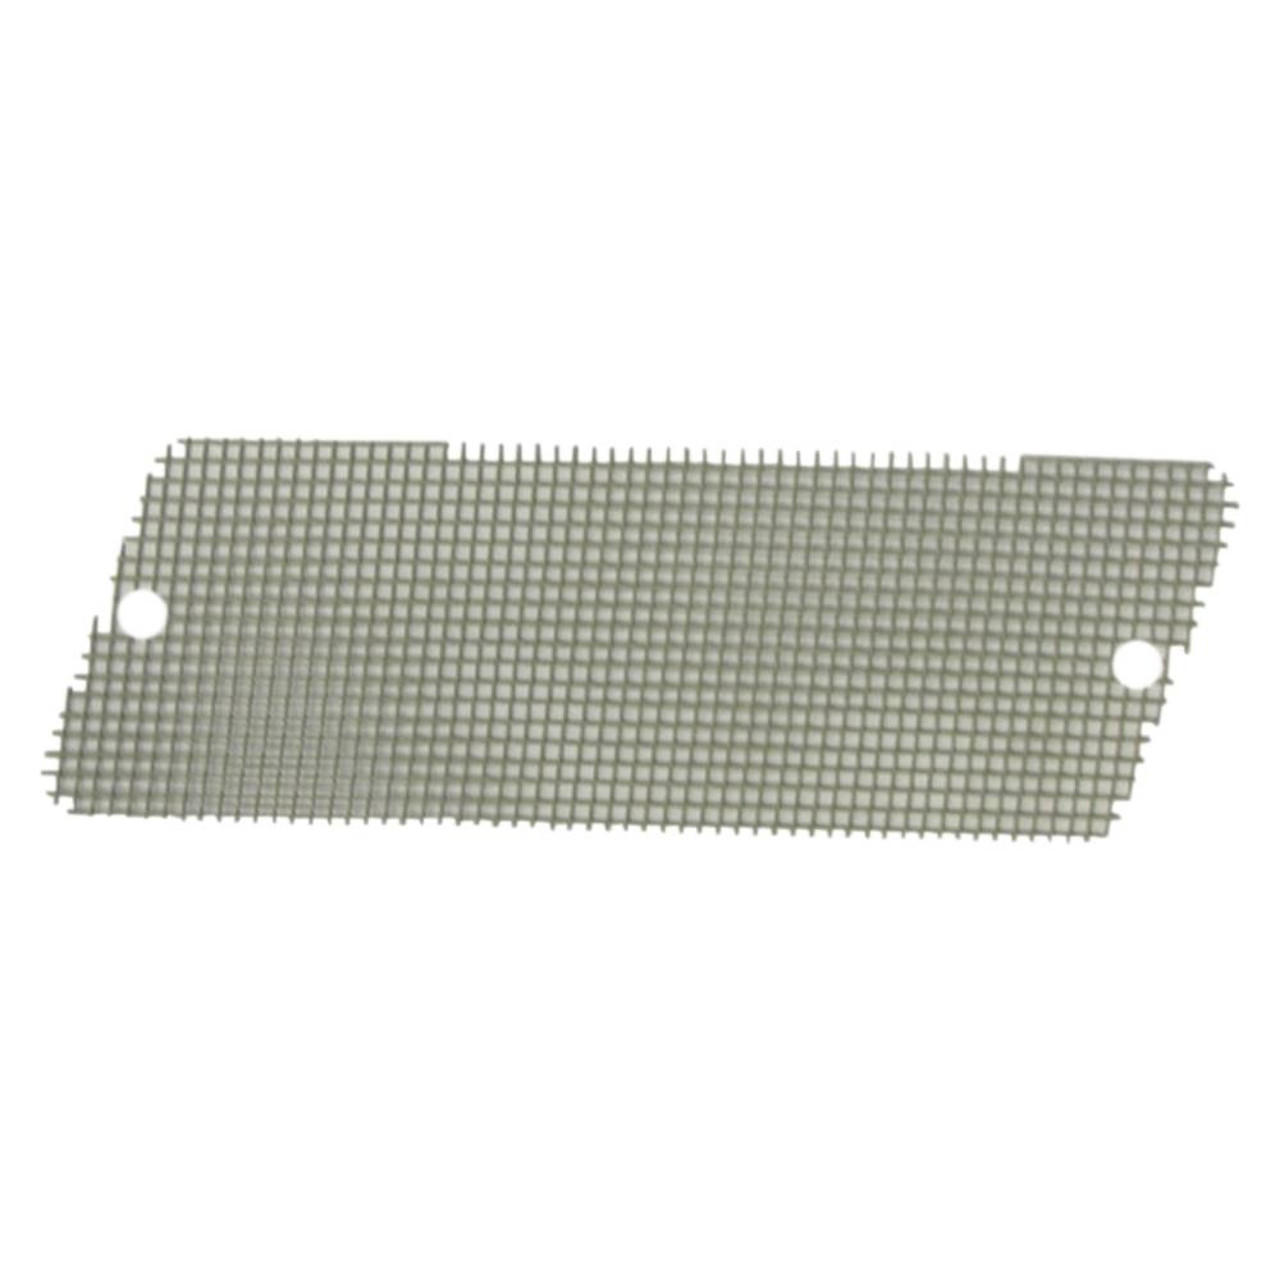 Ford 4000 Tractor Air Filter : Air cleaner screen ford new holland tractor naa a